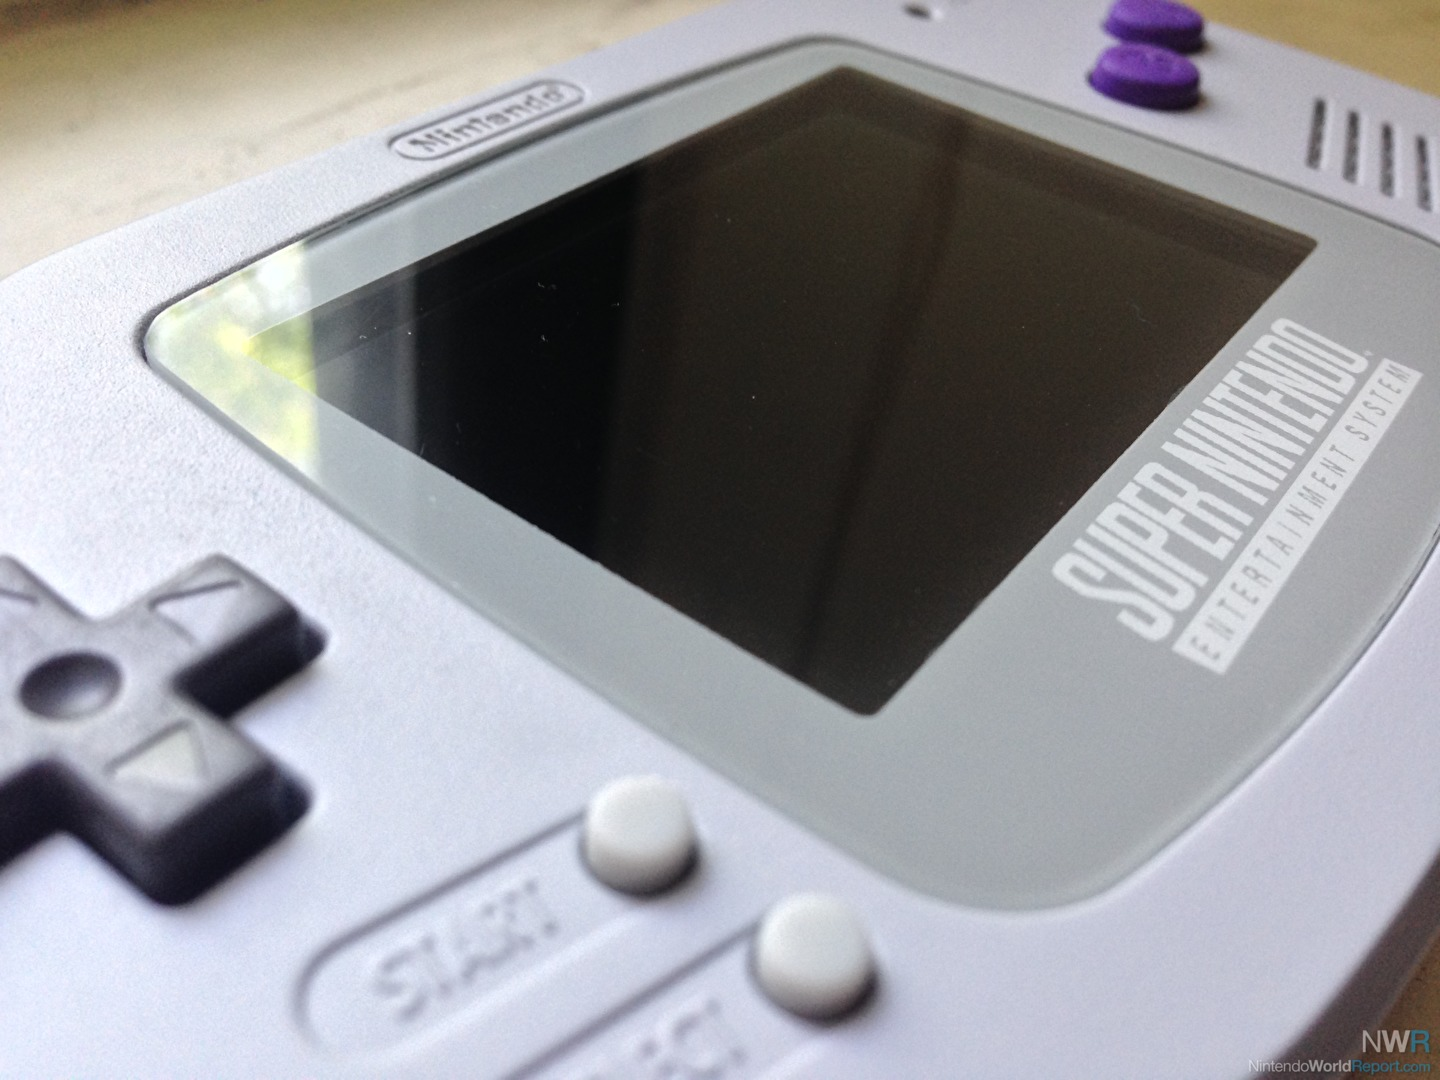 Still Looking for the Best Way to GBA? Look No Further